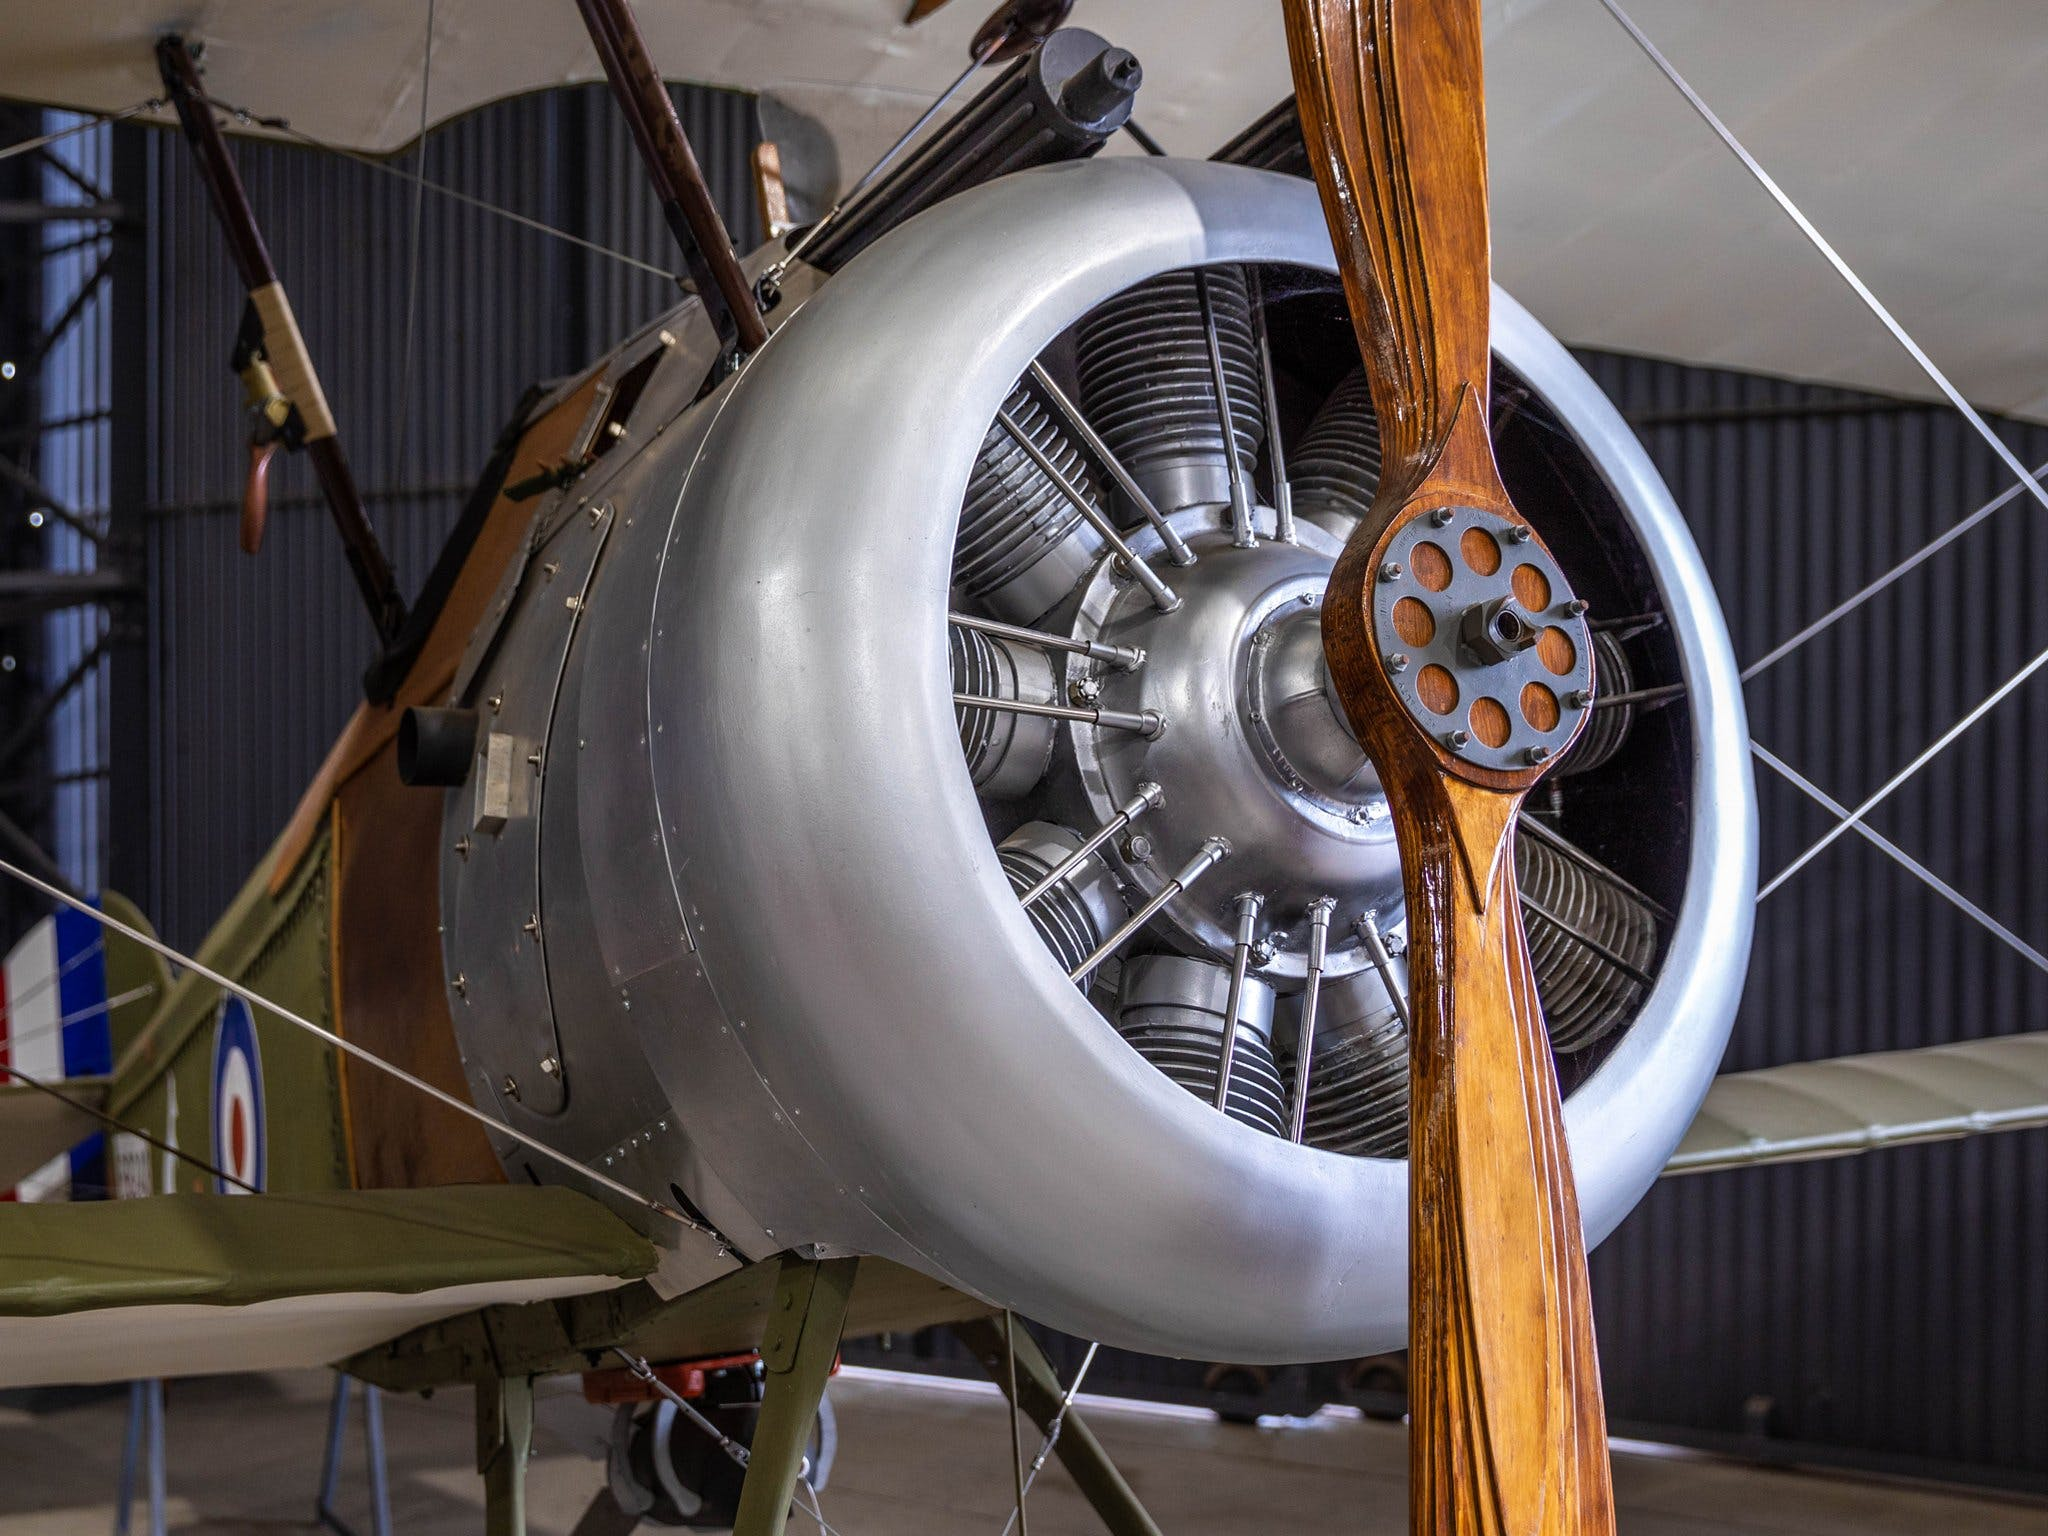 RAAF Amberley Aviation Heritage Centre - Palm Beach Accommodation